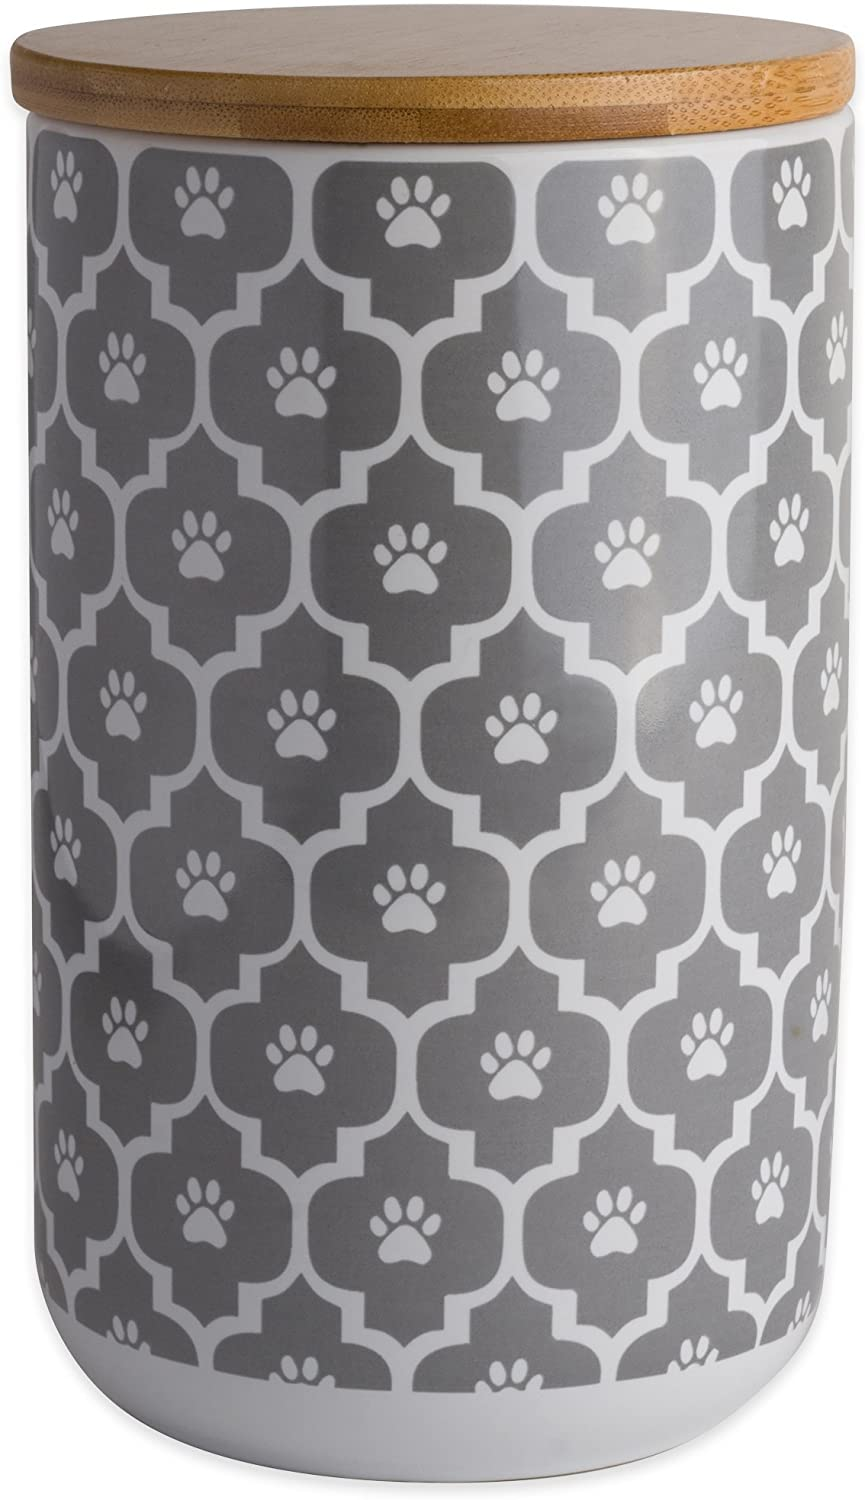 Max 49% OFF Quantity limited Bone Dry Lattice Collection Pet Canister Bowl